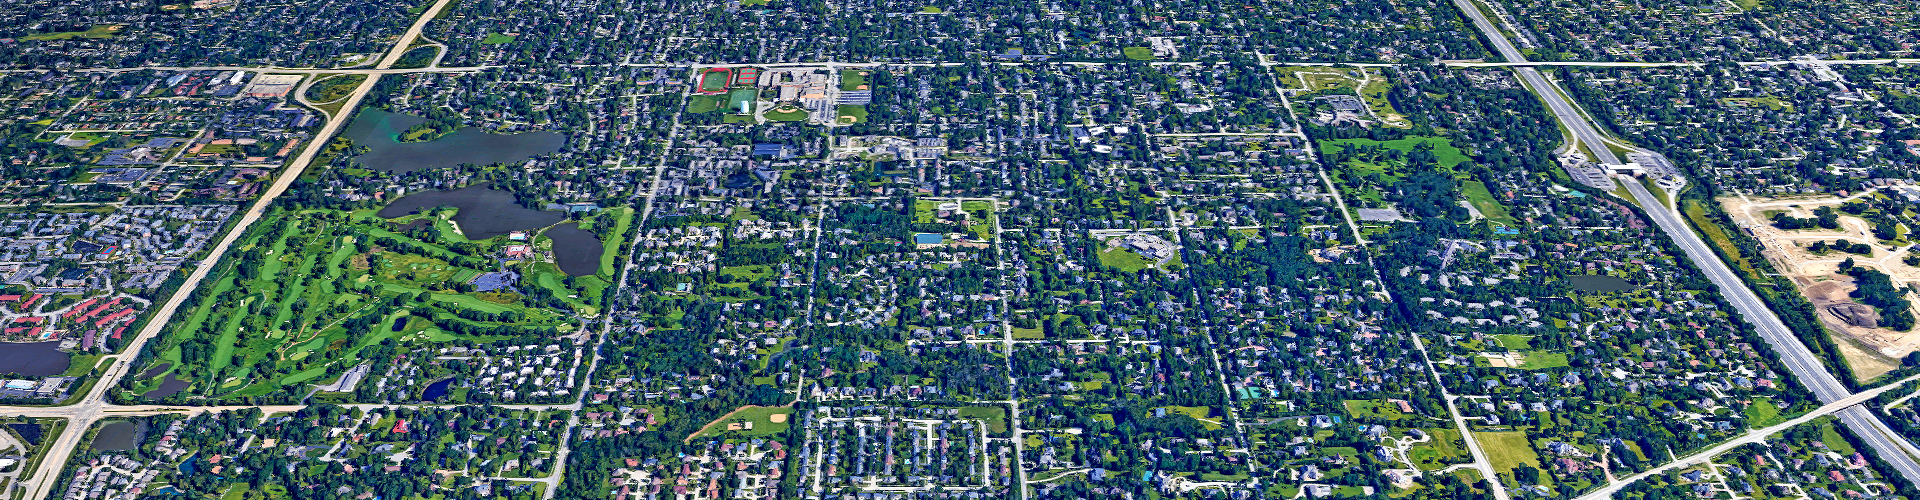 aerial view of roads in Hinsdale, IL